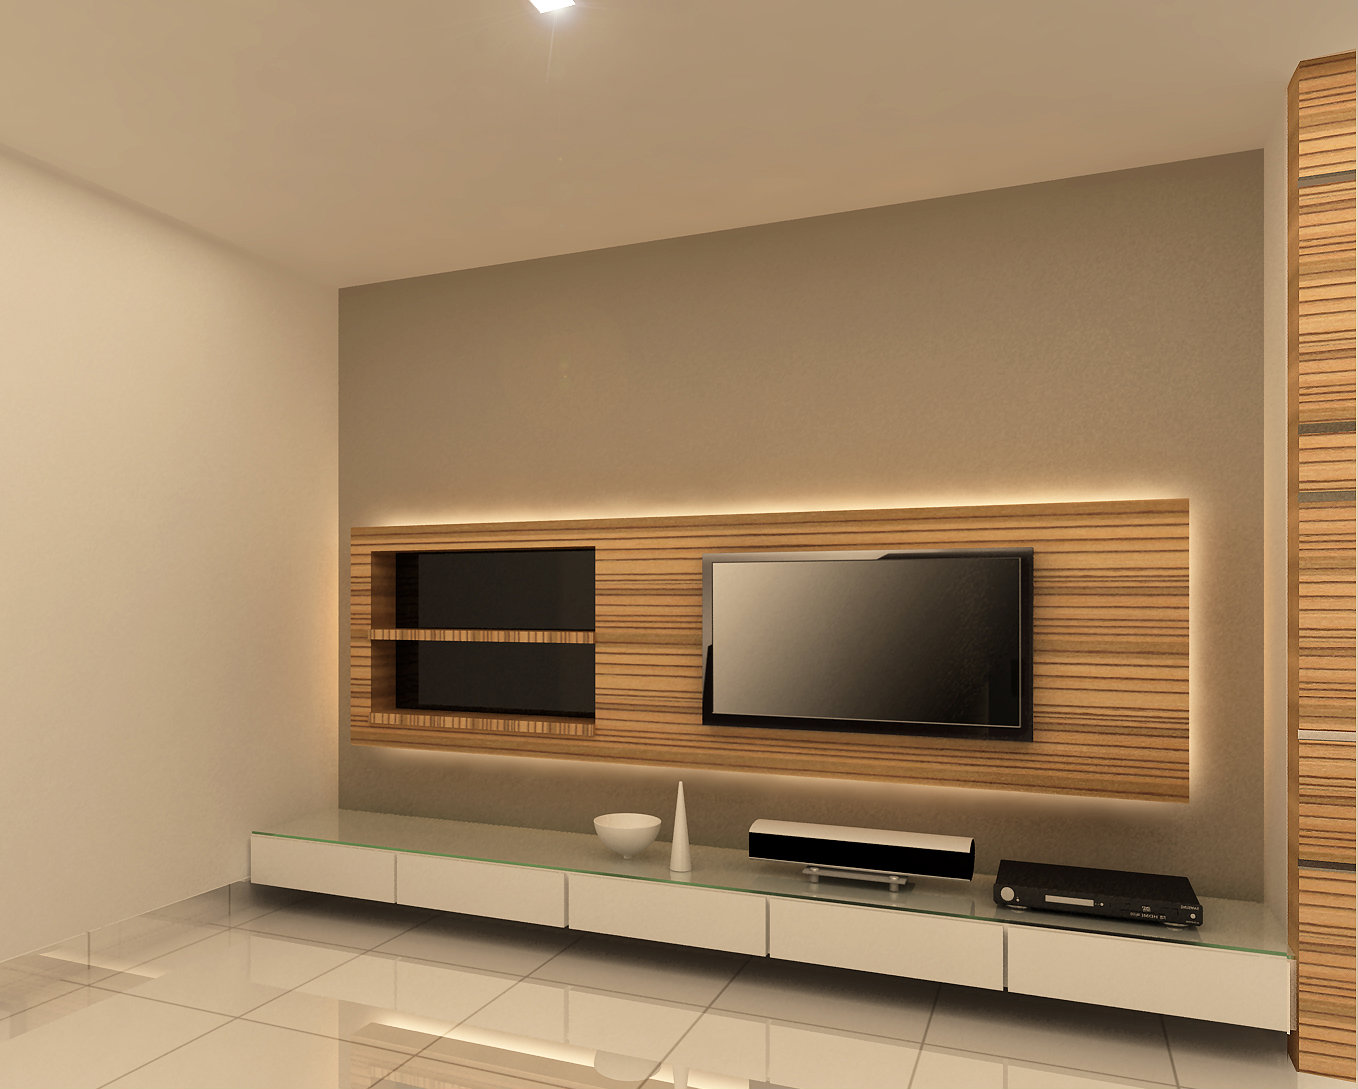 tv console design impian emas project other jb johor bahru design renovation pline. Black Bedroom Furniture Sets. Home Design Ideas